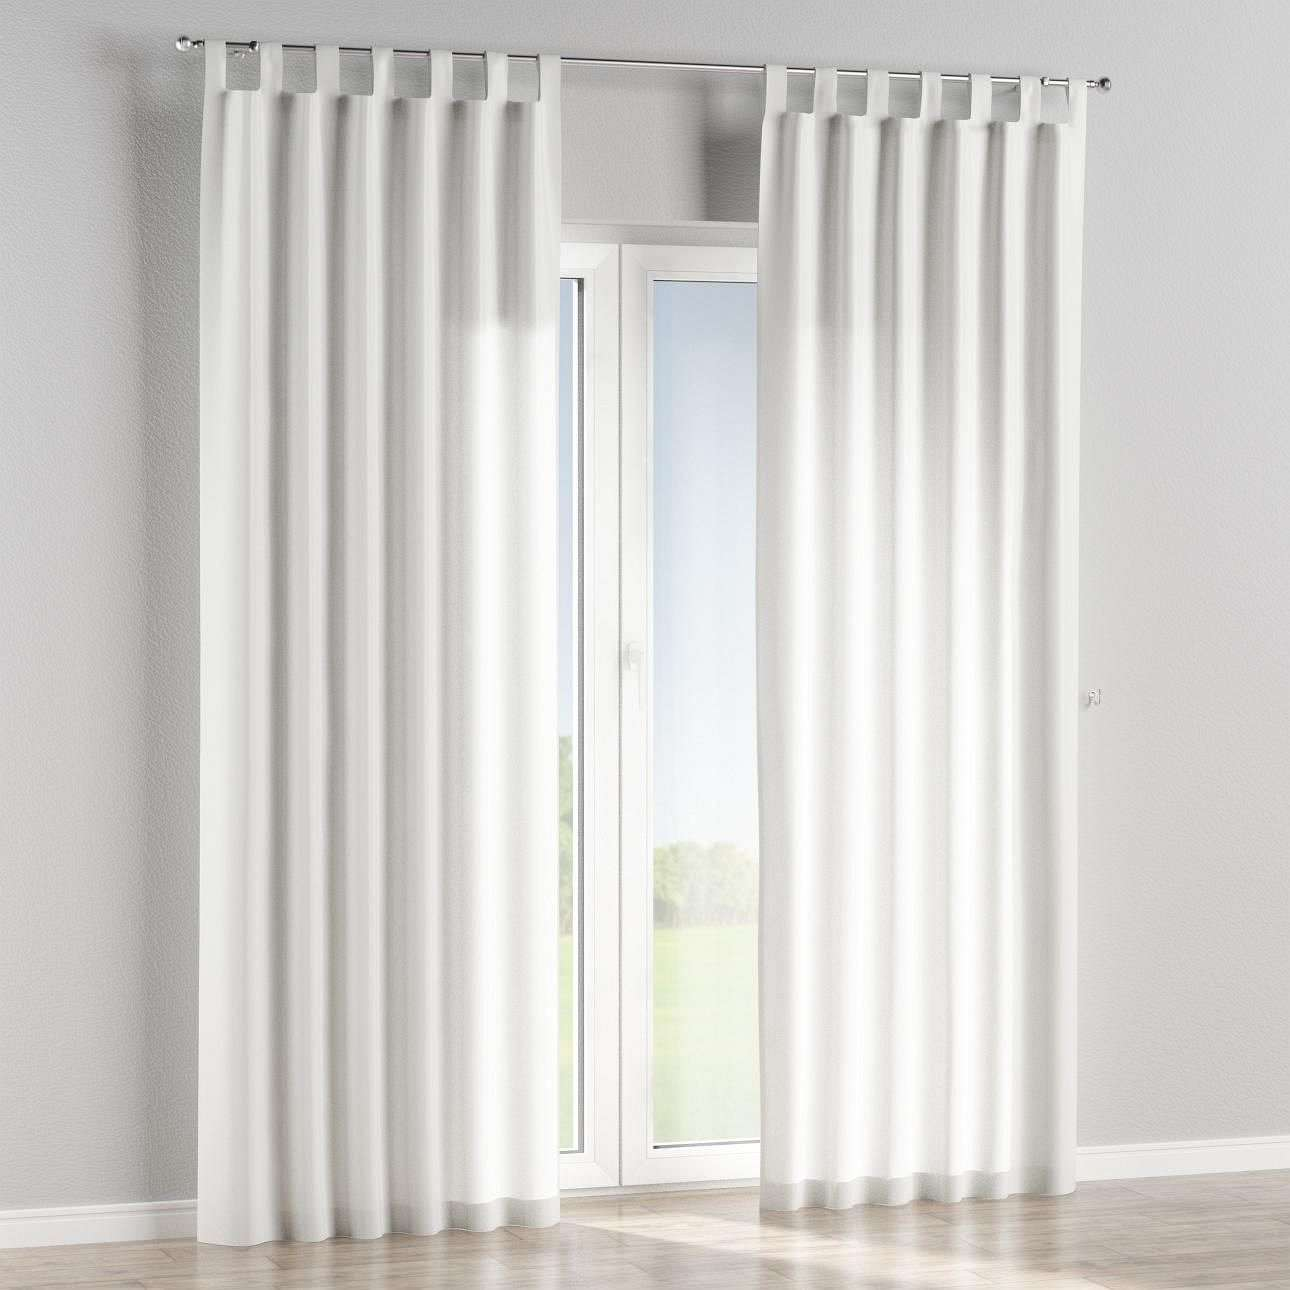 Tab top curtains in collection SALE, fabric: 138-17